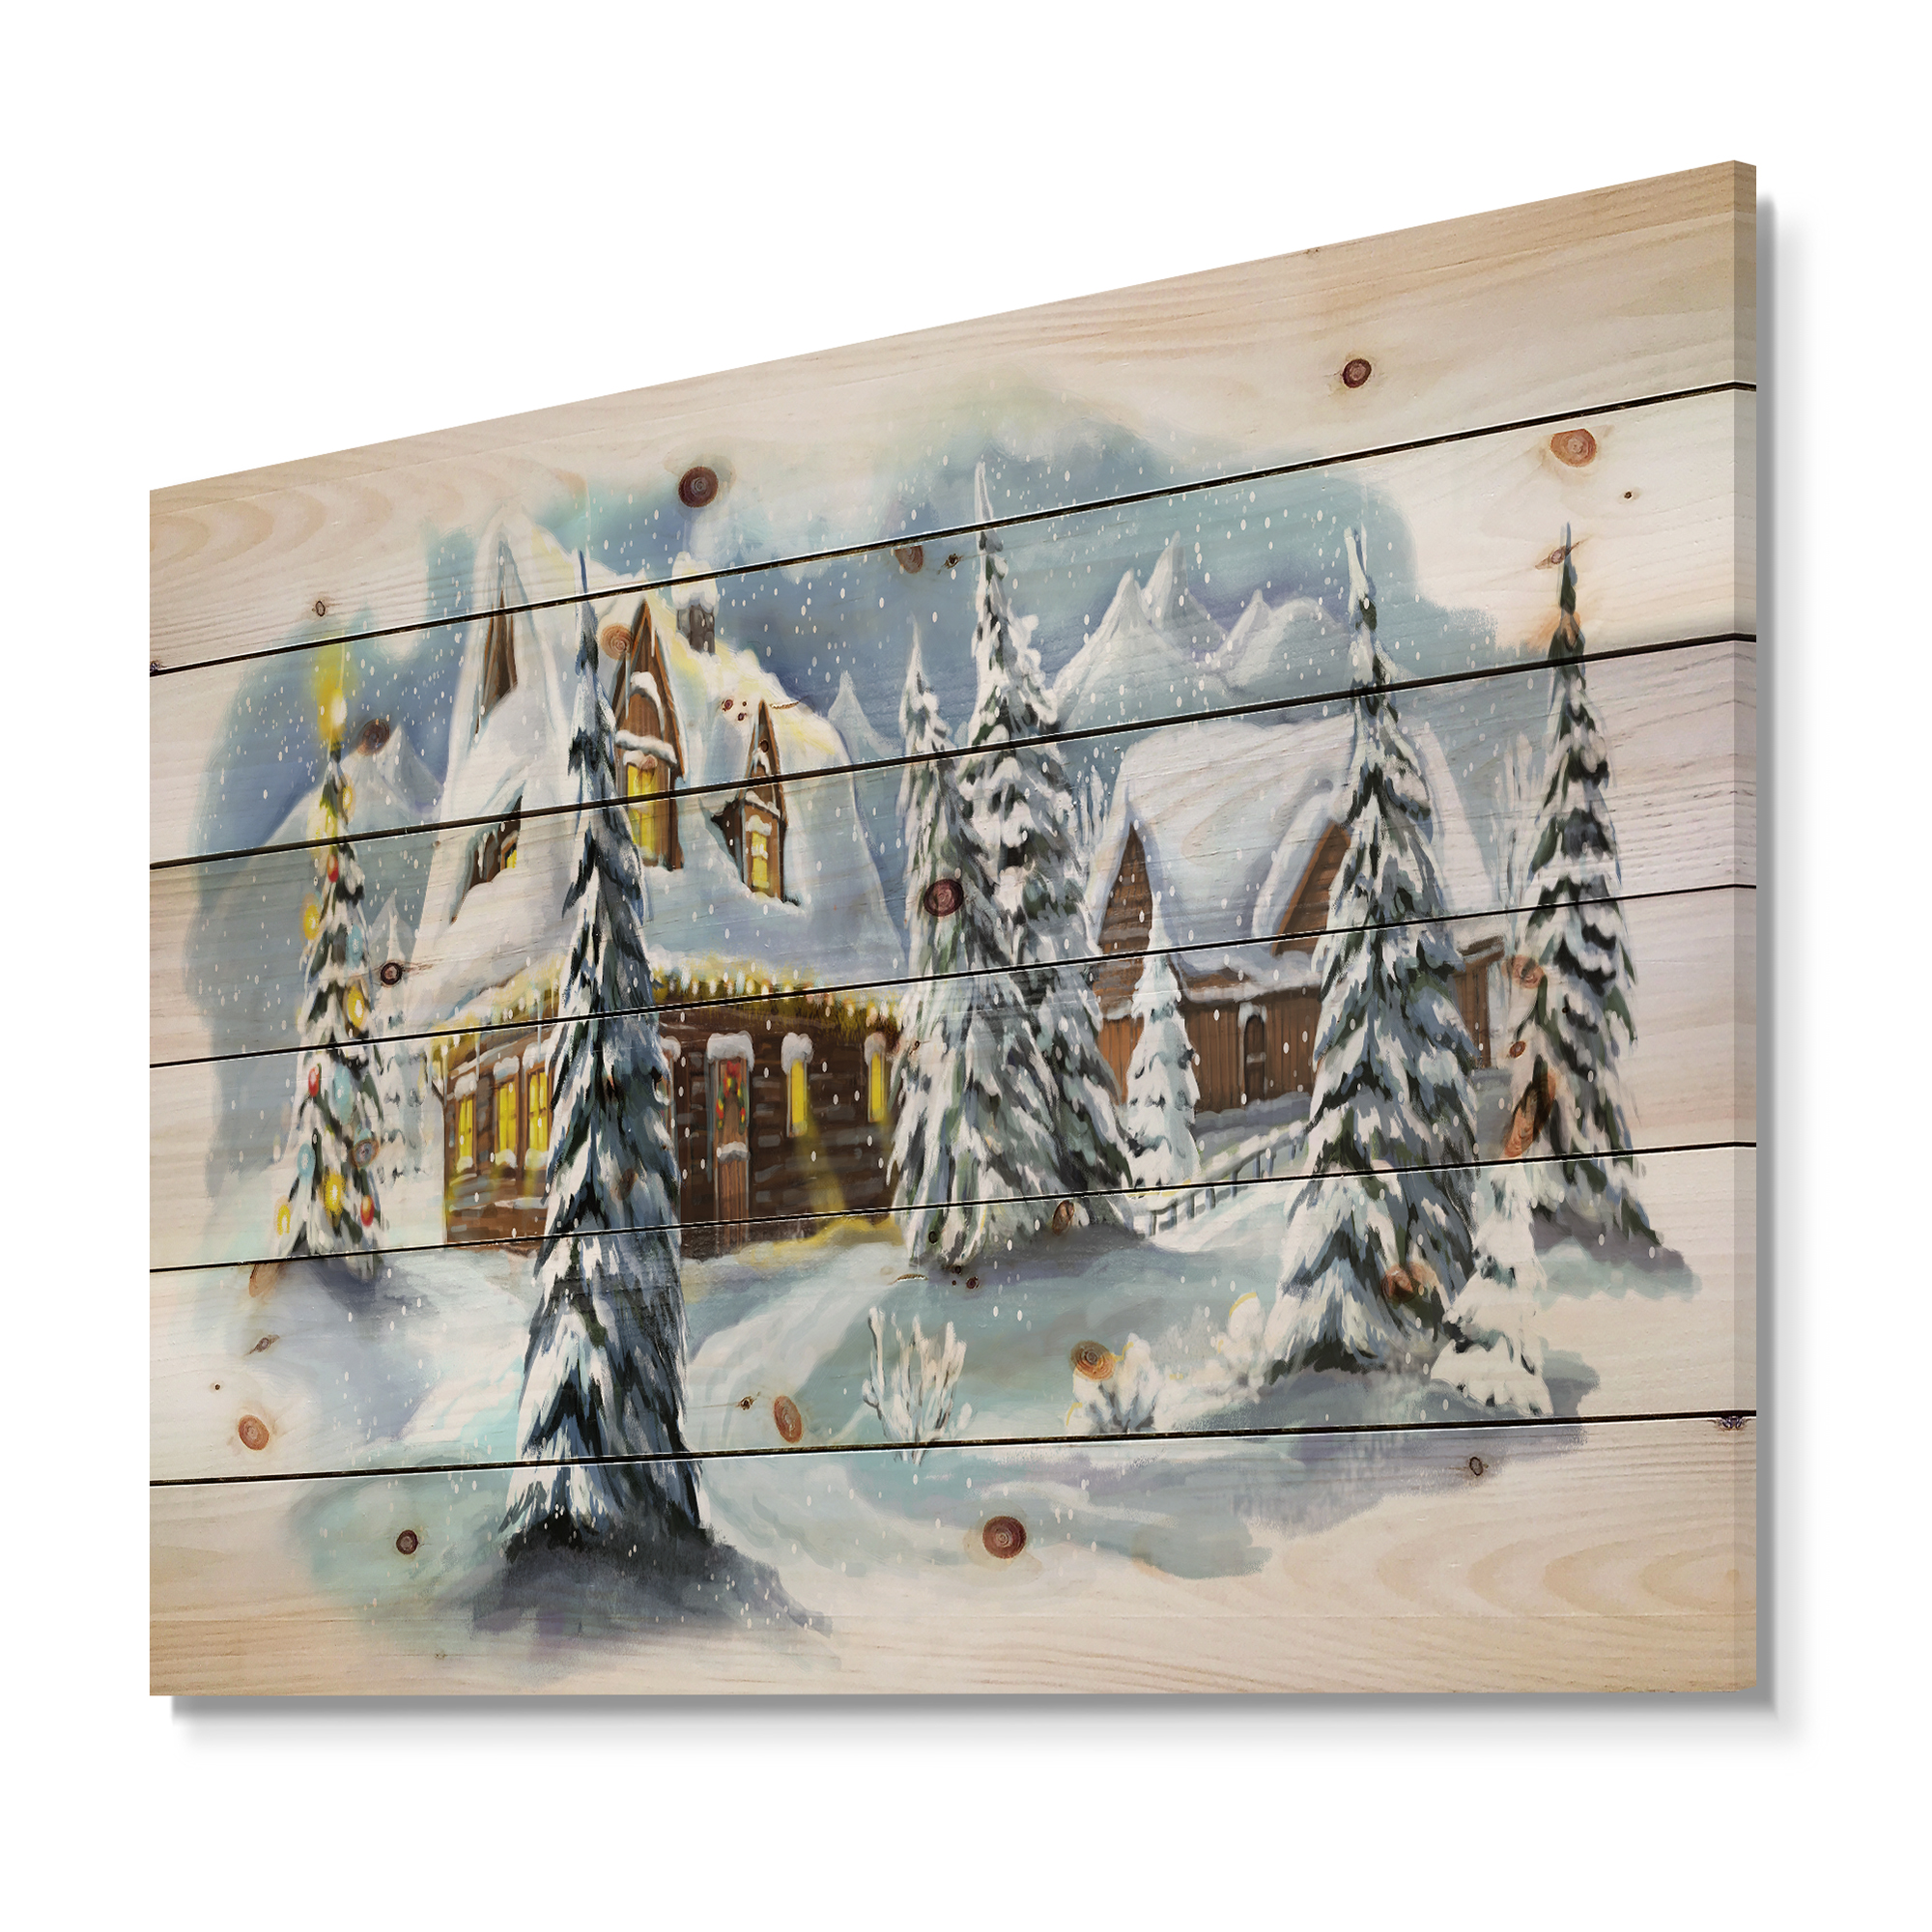 Design Art - Evening winter scene in Mountains with Christmas Tree - image 5 of 5